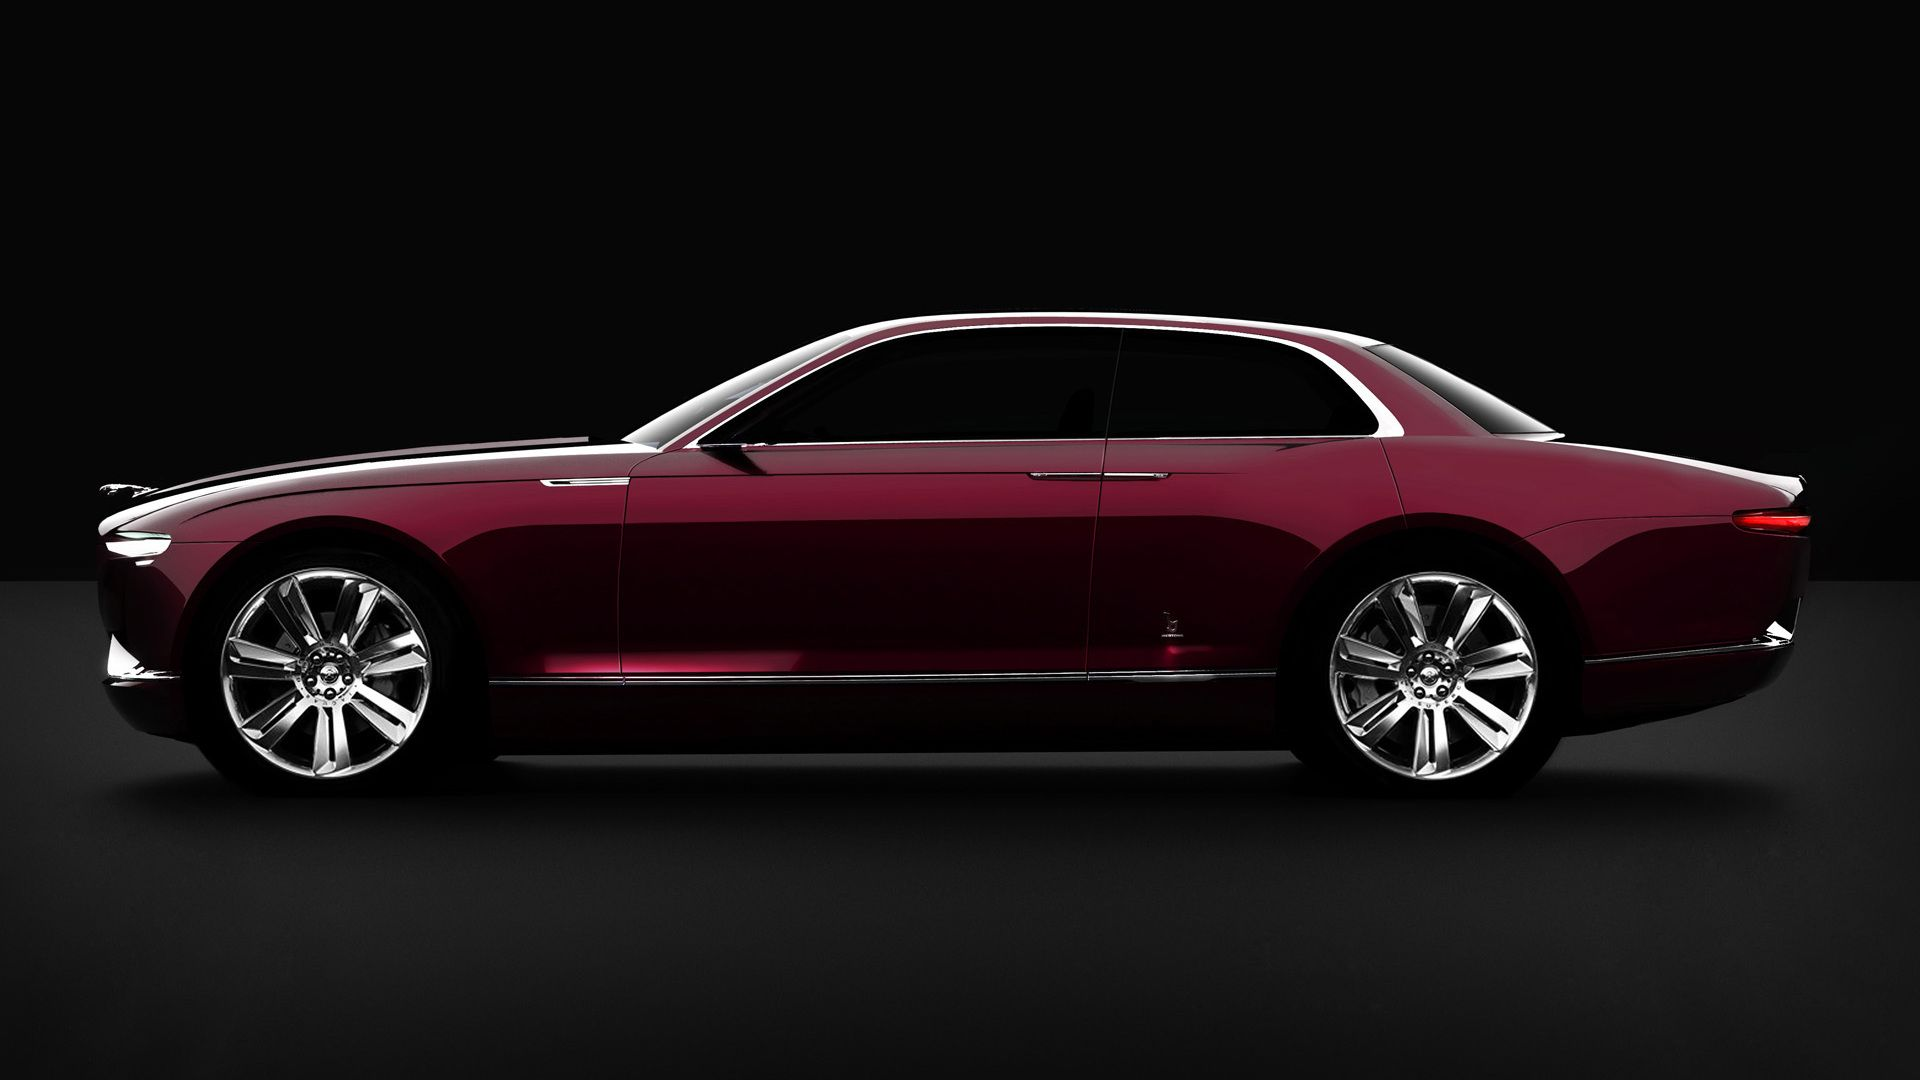 Jaguar Cars Images Hd: Jaguar Car HD Wallpapers